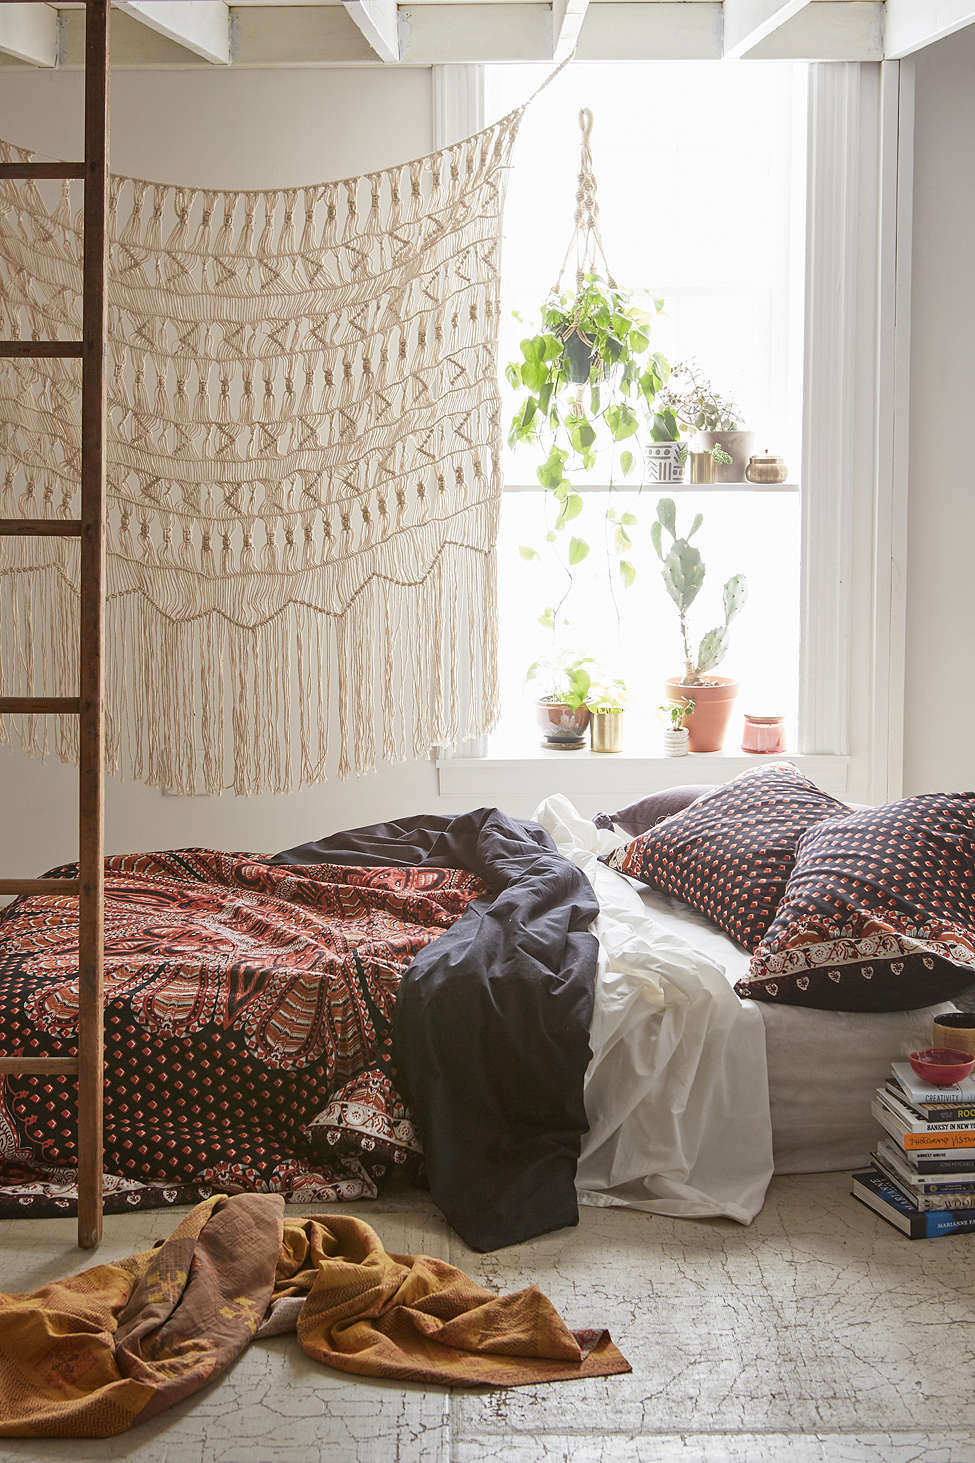 31 bohemian bedroom ideas decoholic - How to decorate a bohemian bedroom ...